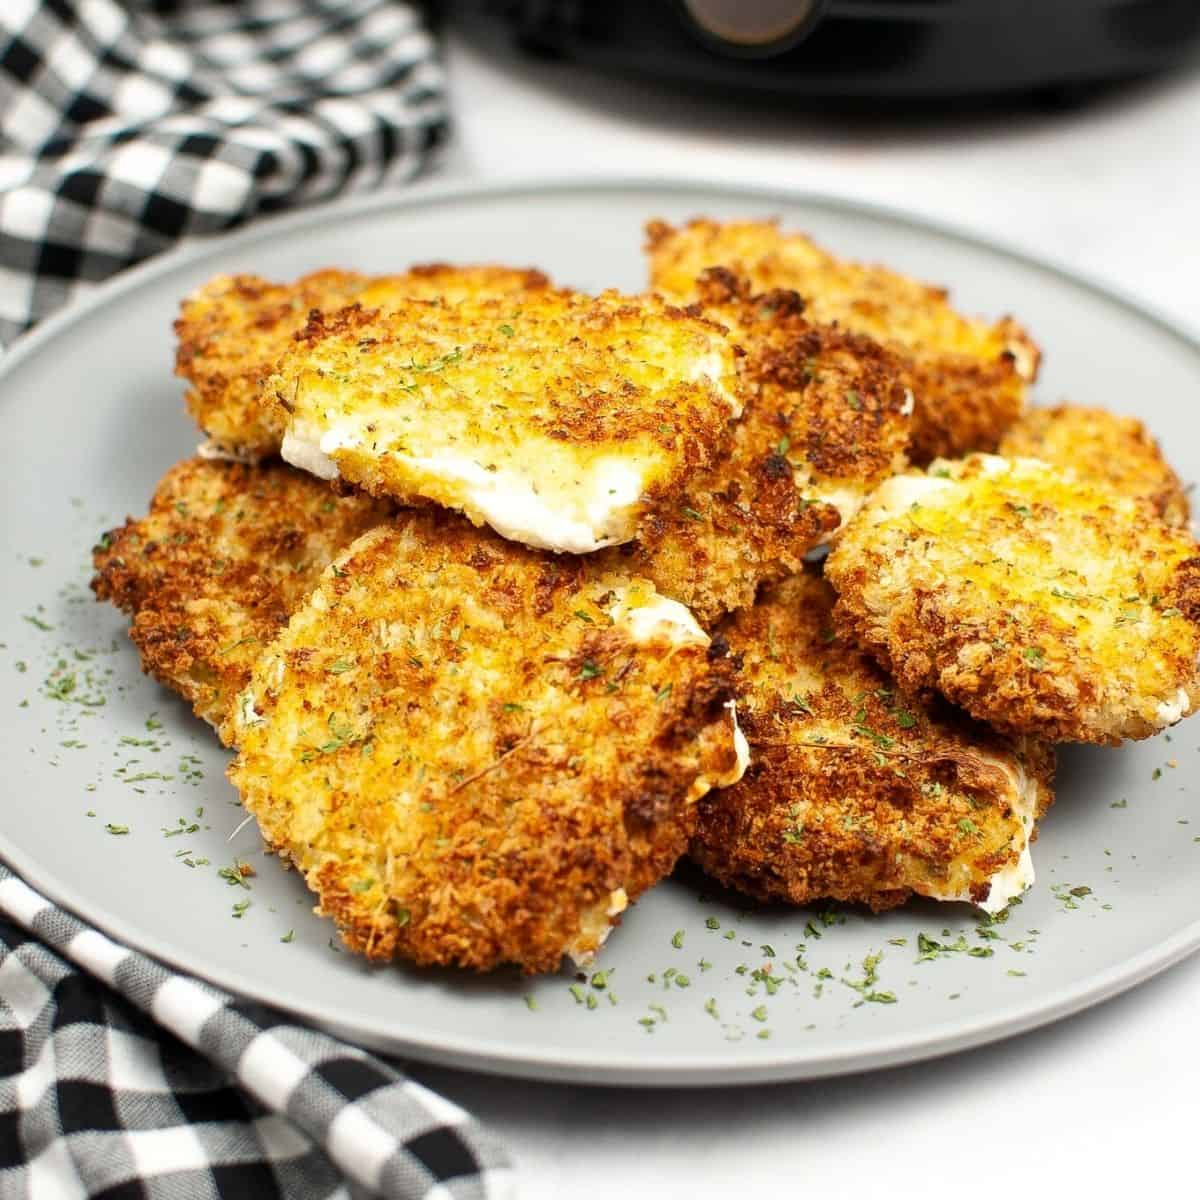 Sliced mozzarella coated with Panko bread crumbs on a grey plate.